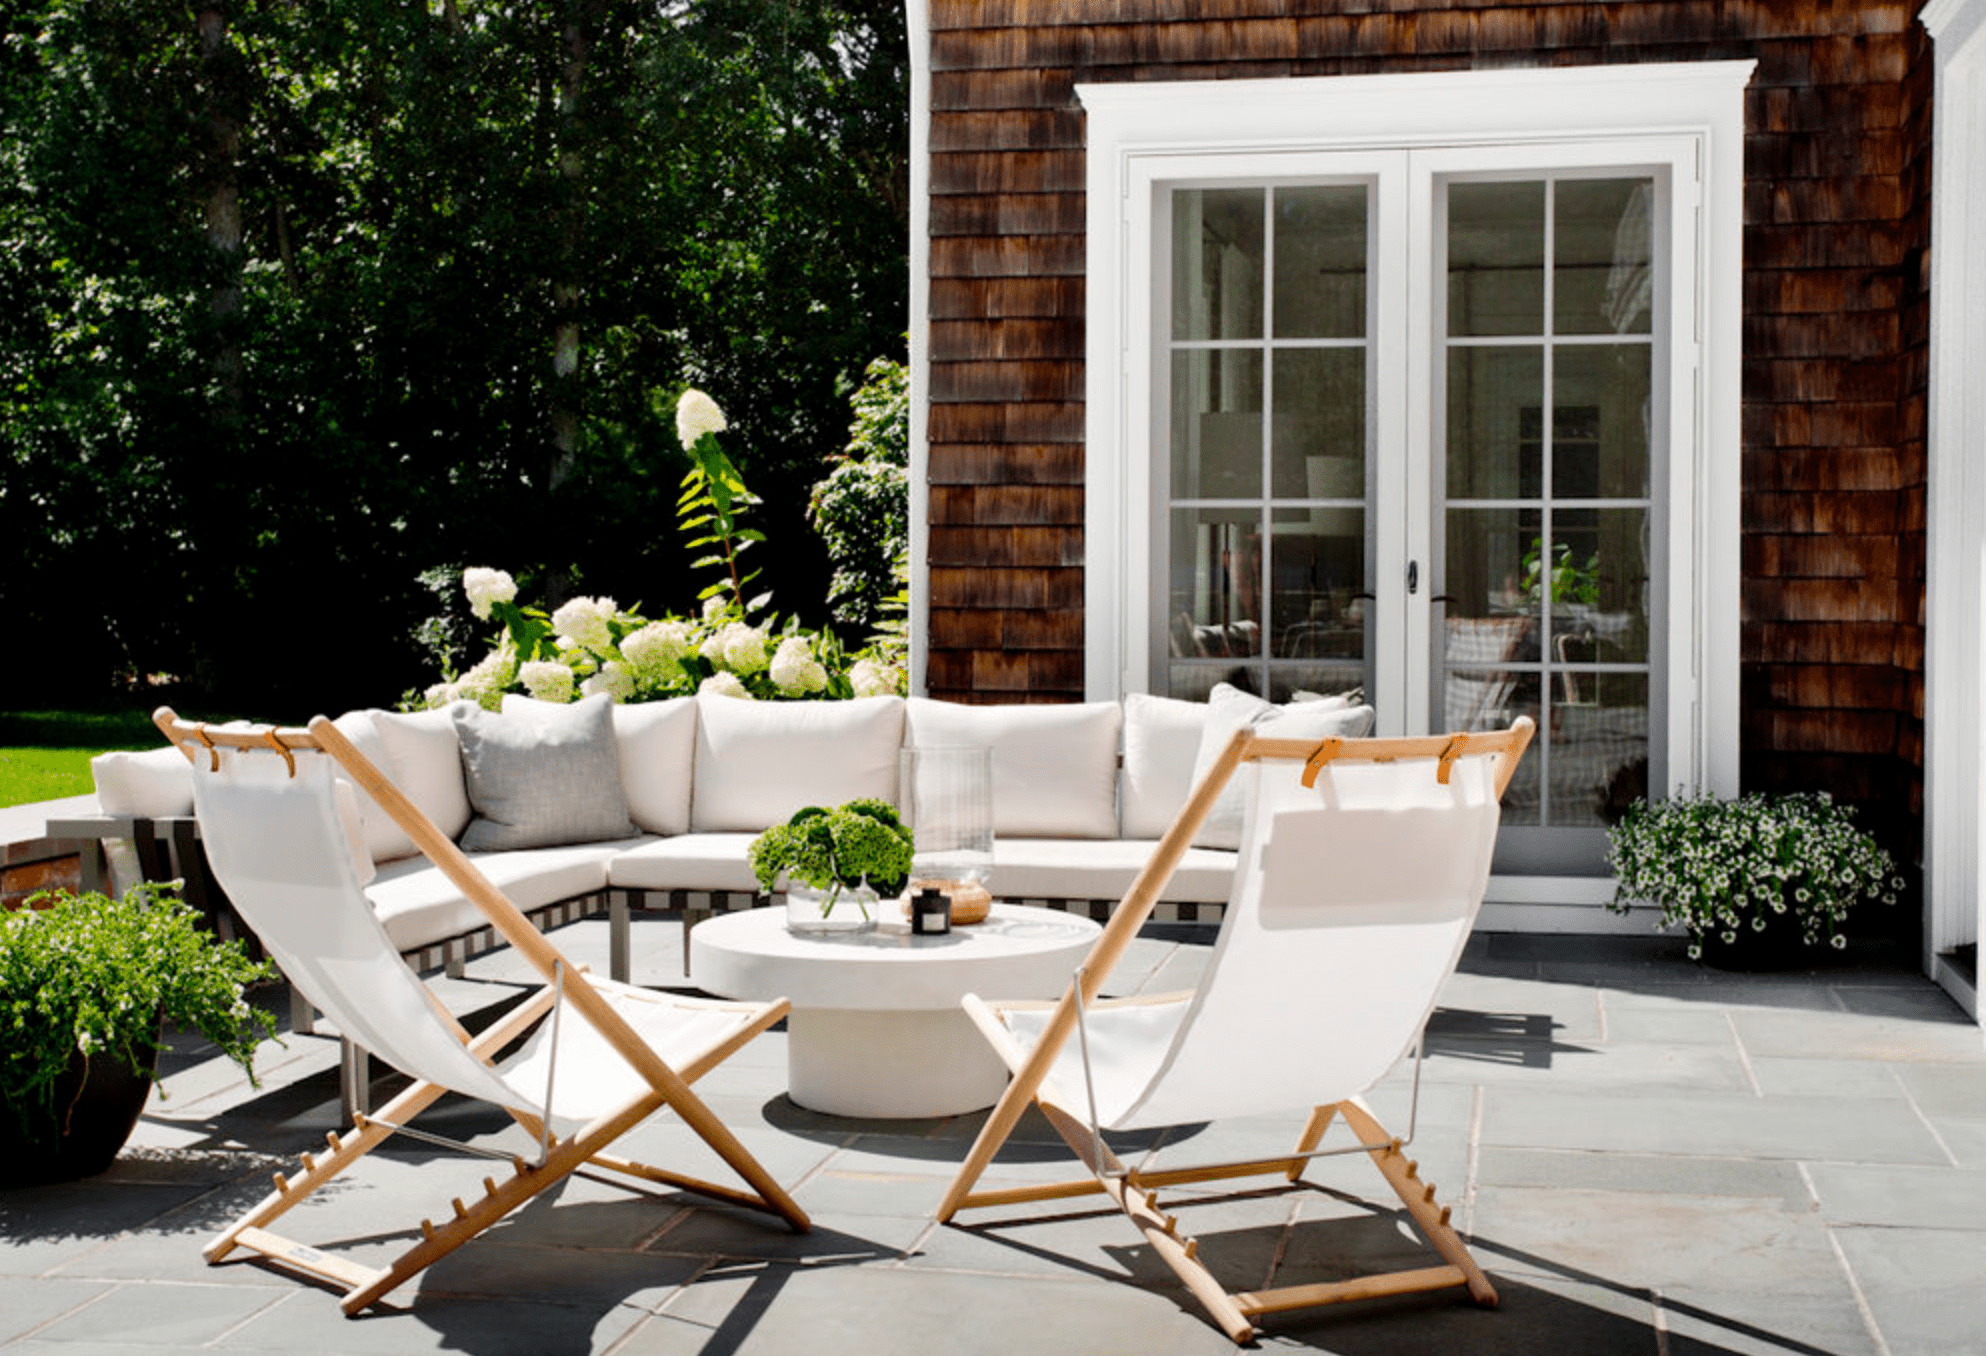 An outdoor deck with a large couch and two smaller chairs